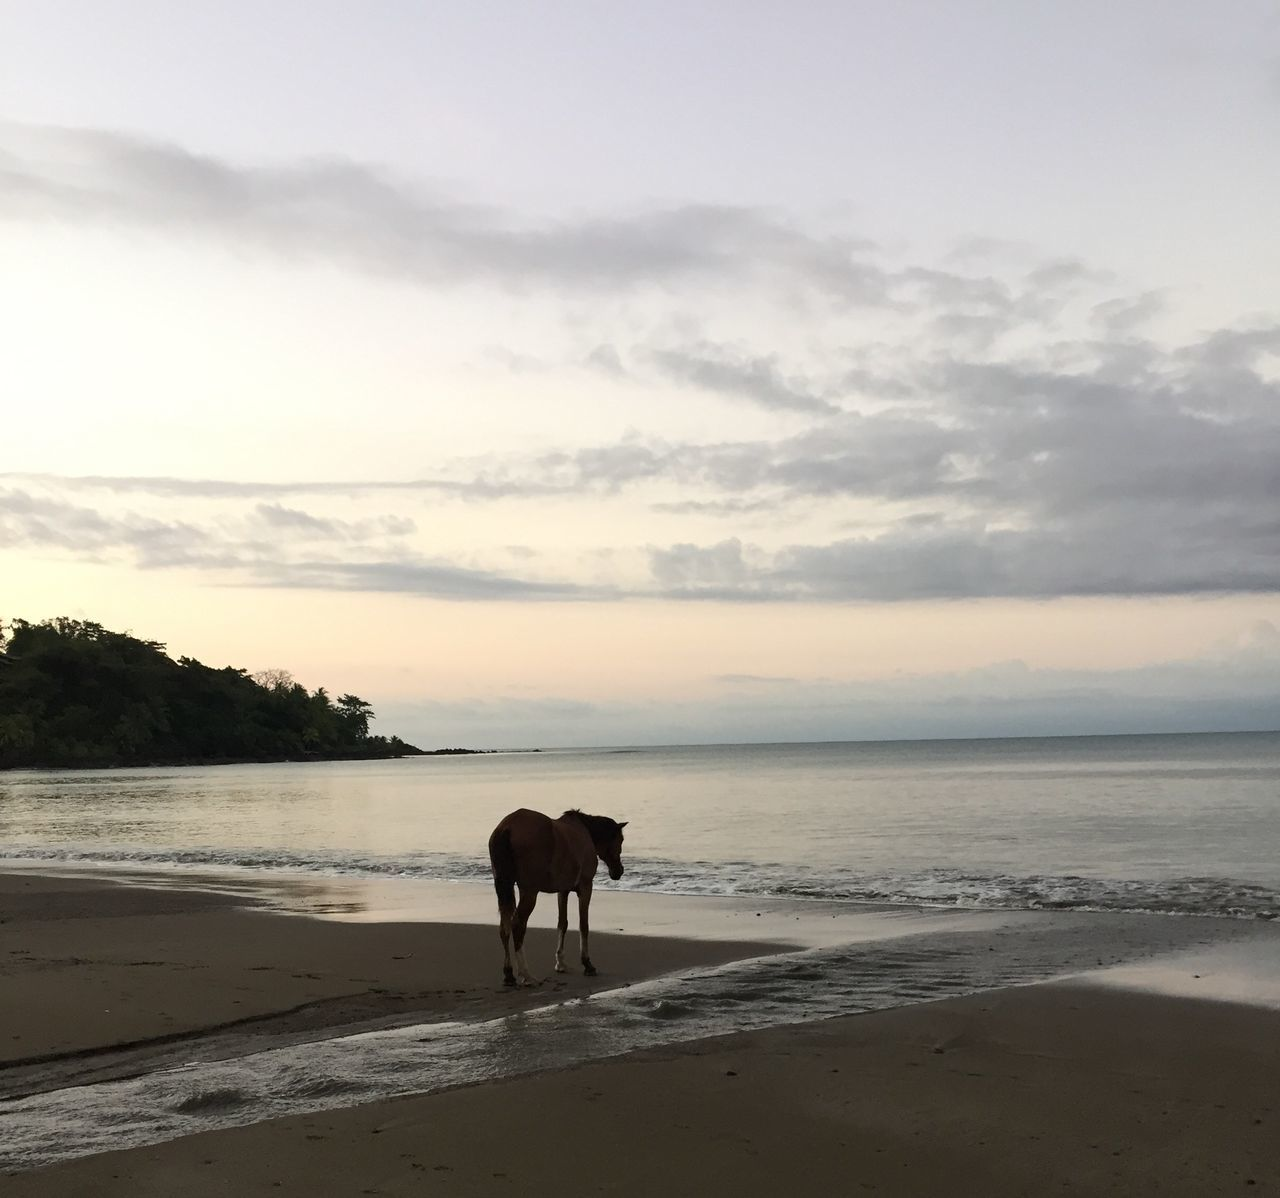 The sentimental horse. Costa Rica